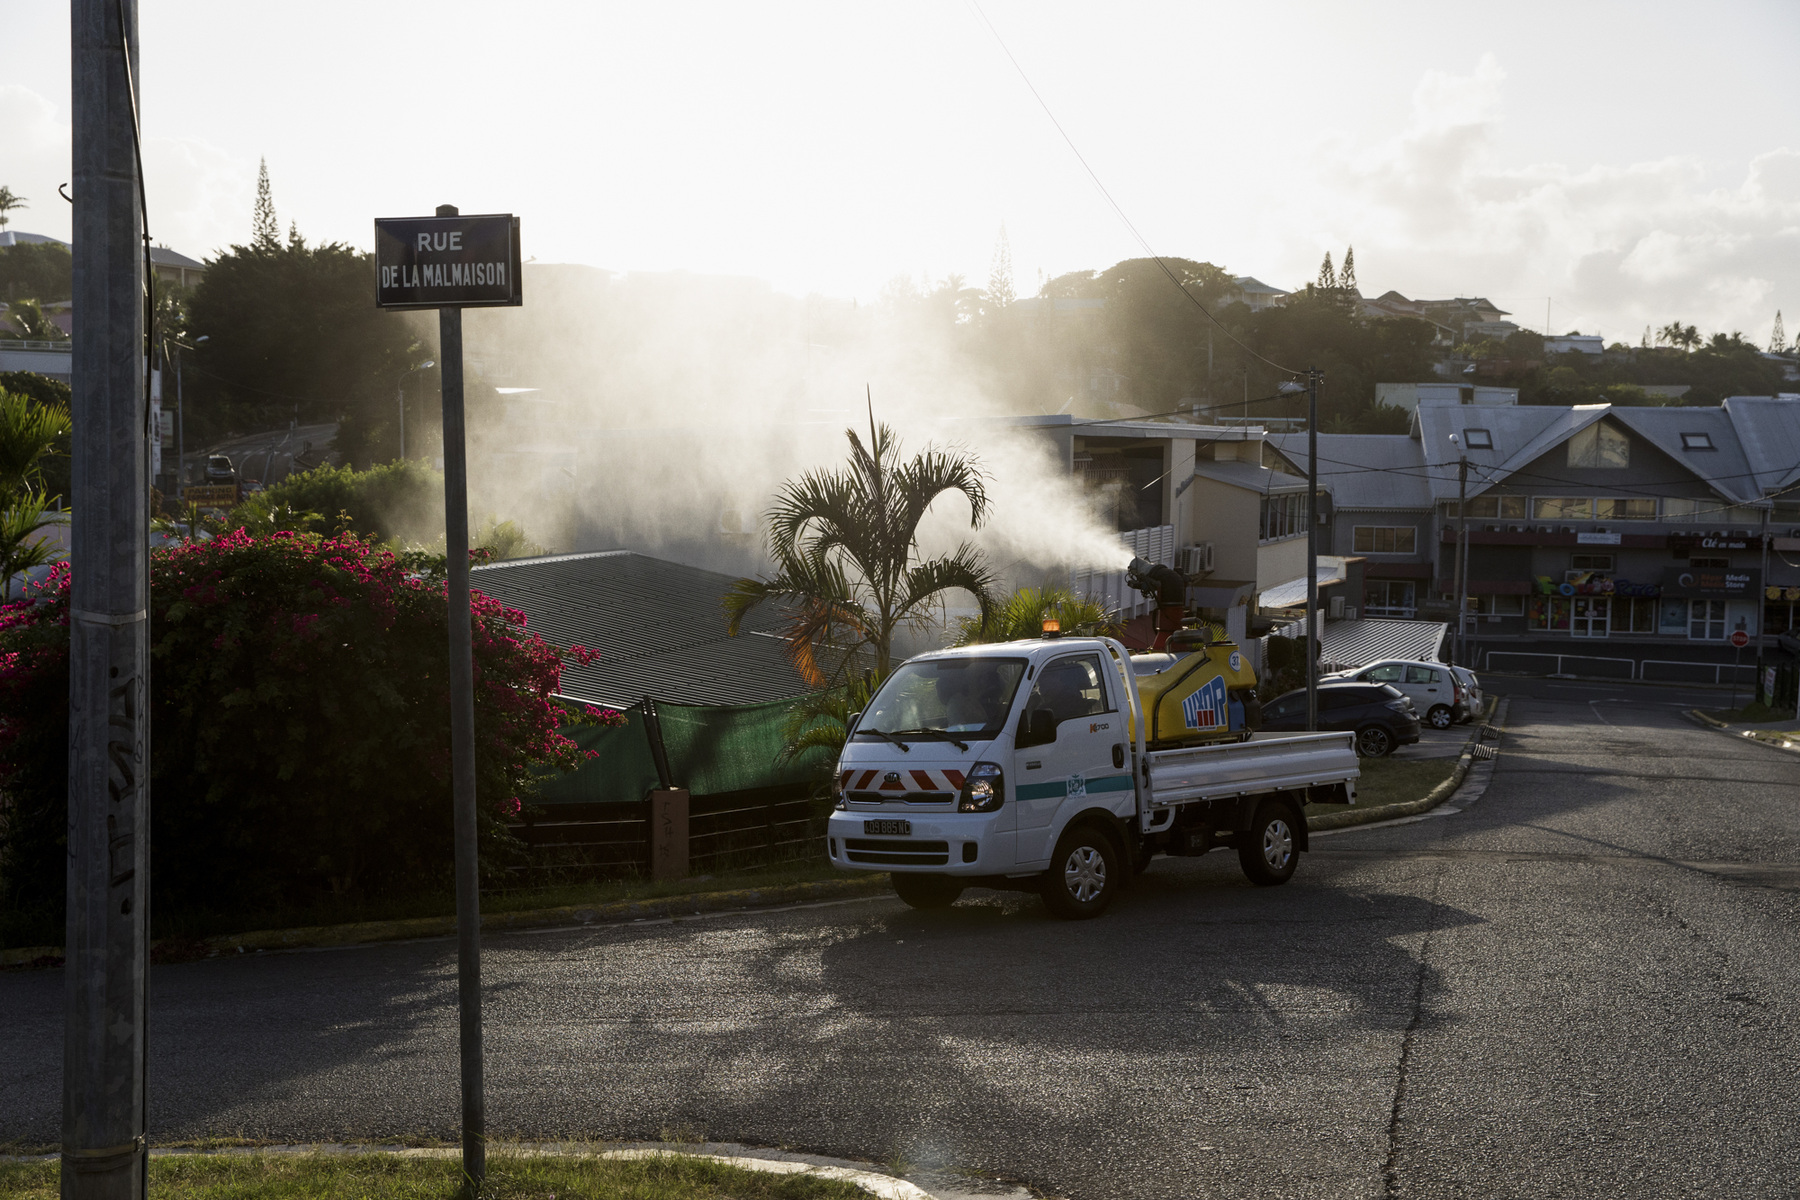 Adrienne Surprenant - 09/01/2019, Nouméa, New Caledonia—The direction of sanitary risks of Nouméa's town is spraying an insecticide, delatméthrine, in the Vallée des Colons neighborhood. In a perimeter of 100 meters around each confirmed dengue case, they do 3 treatments in 10 days. During the 2018 epidemic, Nouméa deals with 15 to 20 new dengue cases per day. It is the dengue serotype 2 that circulates, a type that hasn't been on the island since 1998. The younger population not being immune, the epidemic presents a higher risk. Dengue virus has four serotypes, and a second infection from a different type is increasing the risk of severe dengue and hemorrhagic fever.